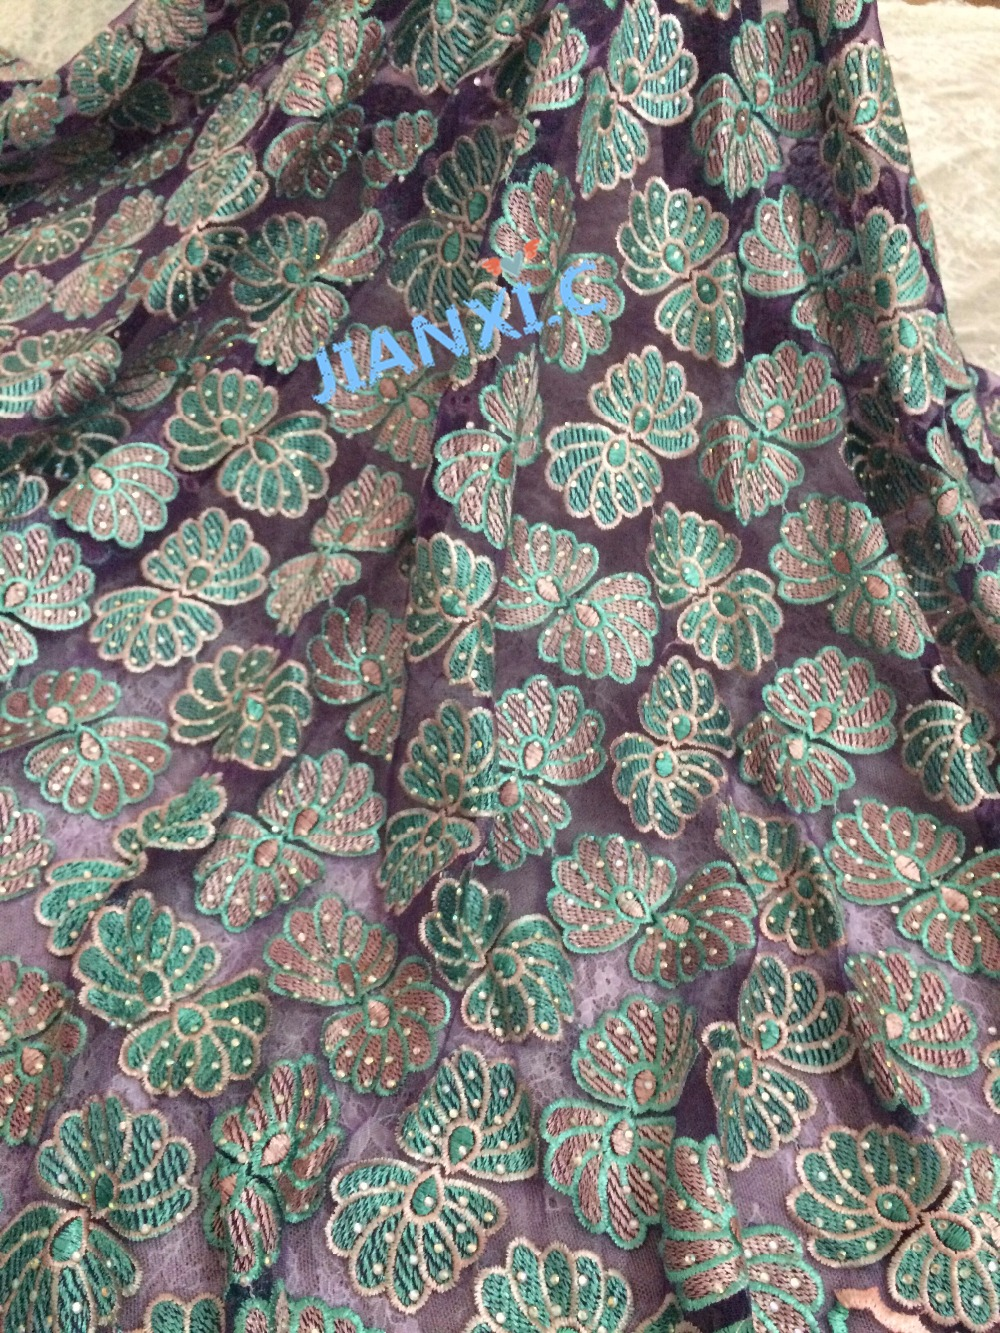 Latest David 82811 African French Lace Fabric High Quality African Embroidered Tulle Lace Fabric with stones